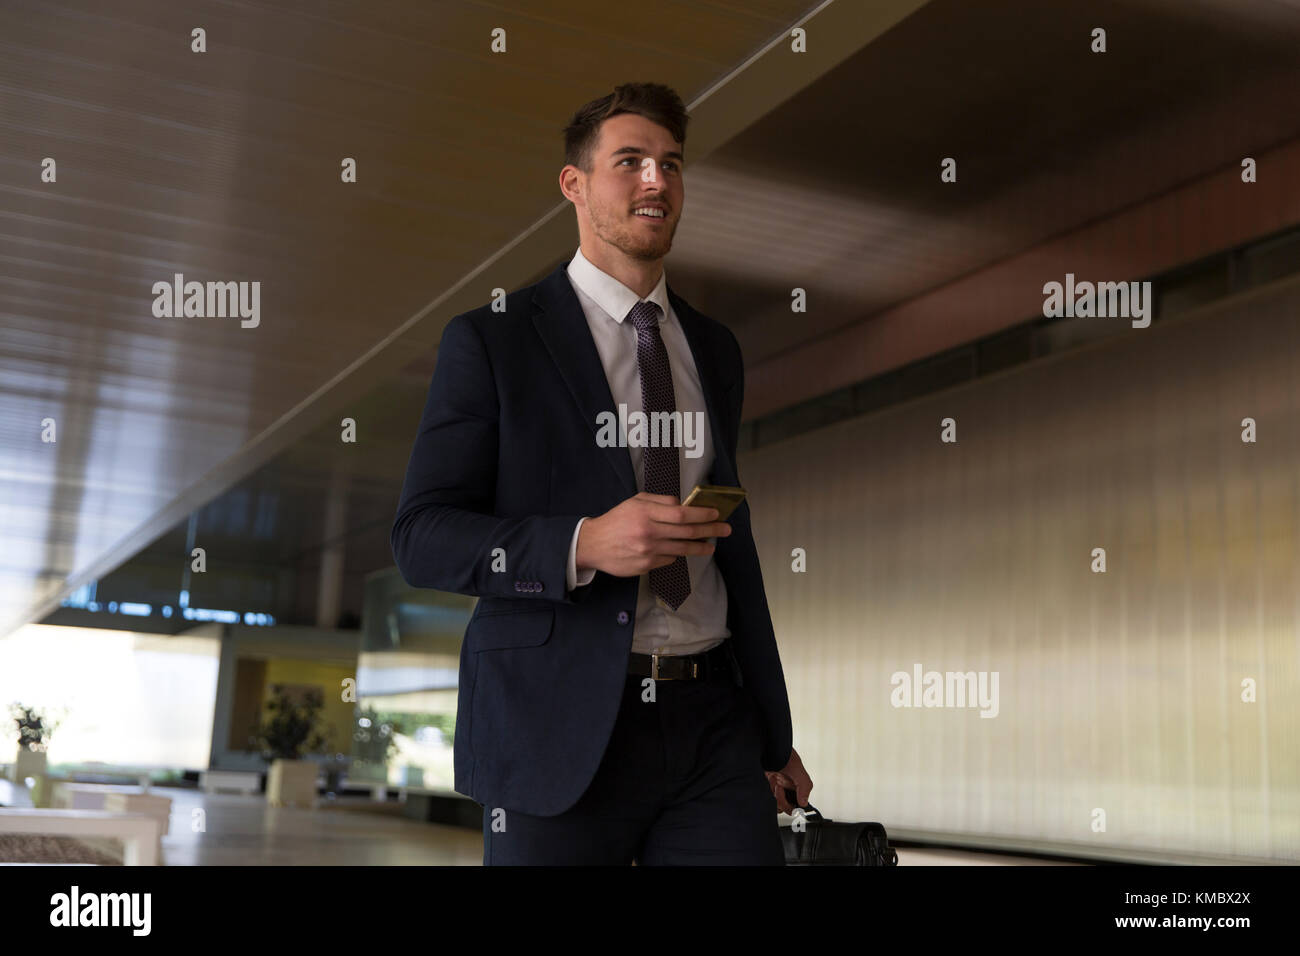 Businessman walking with smart phone in office lobby - Stock Image